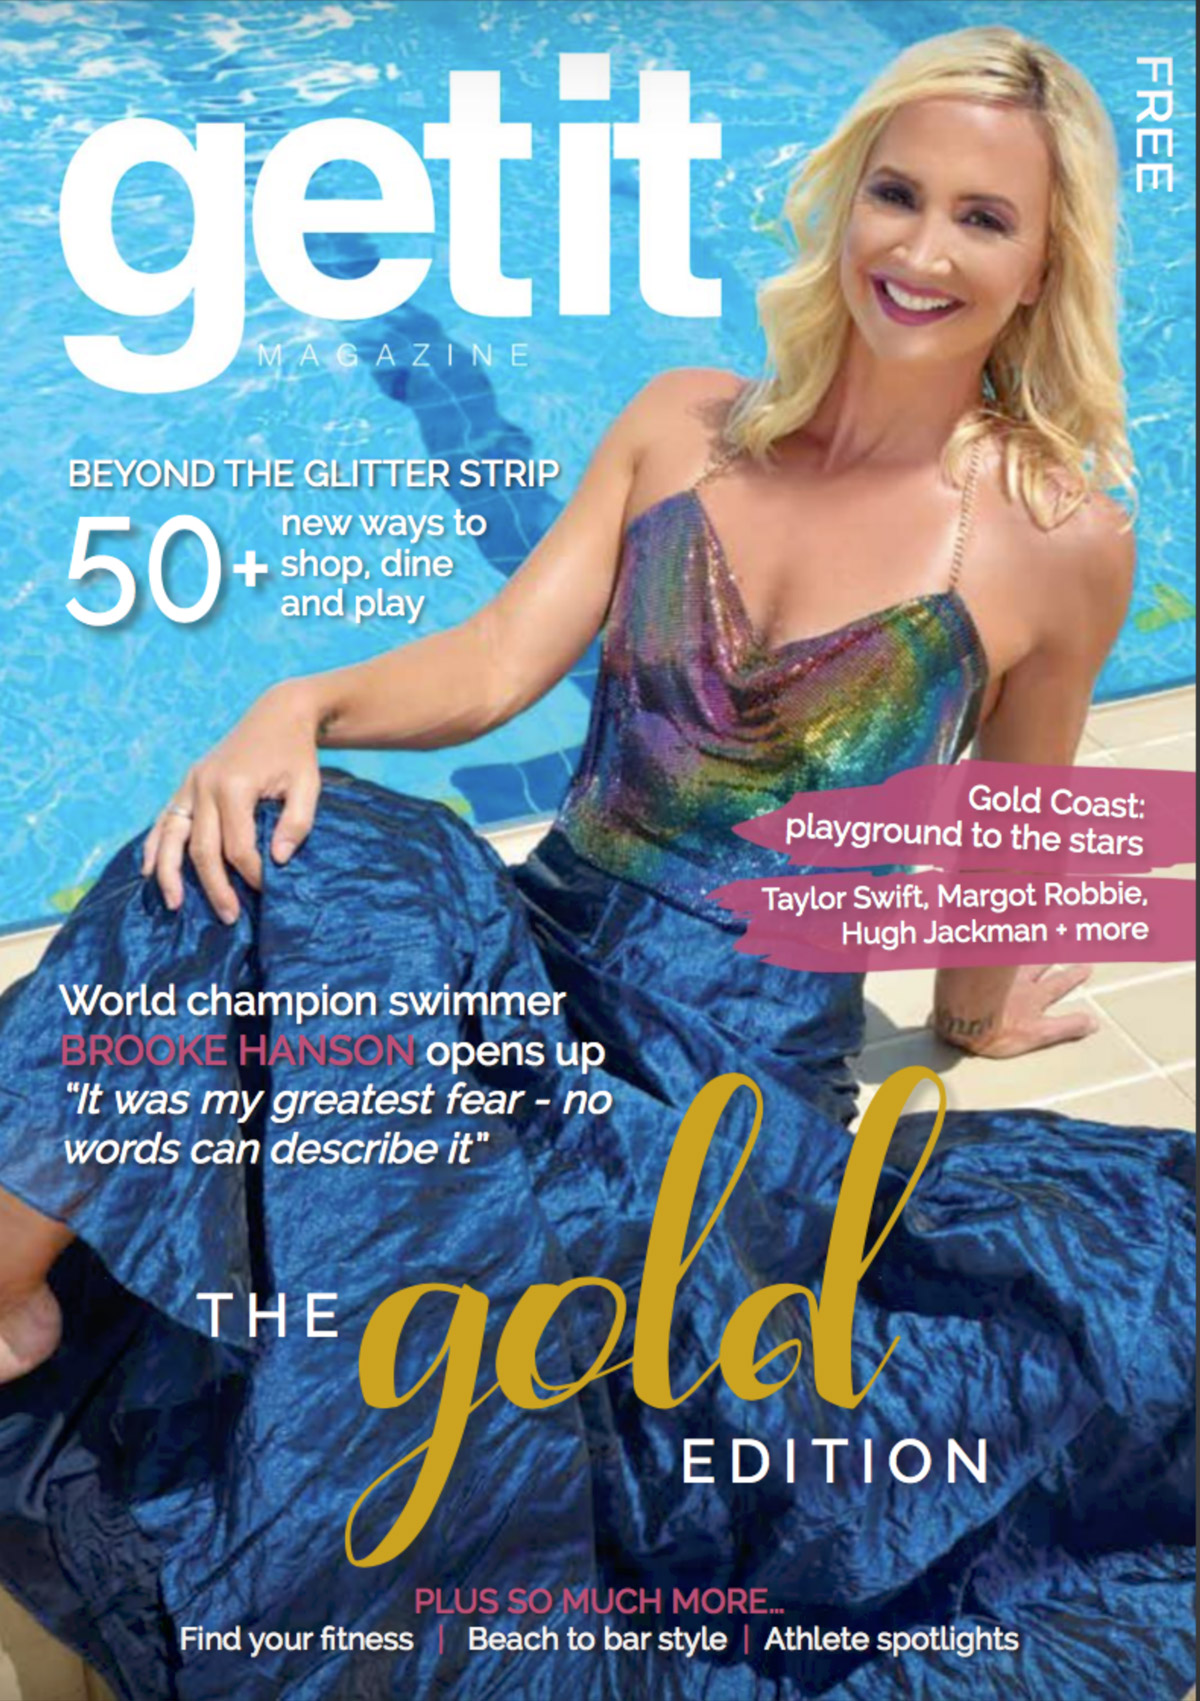 Get It Magazine April 2018 Cover